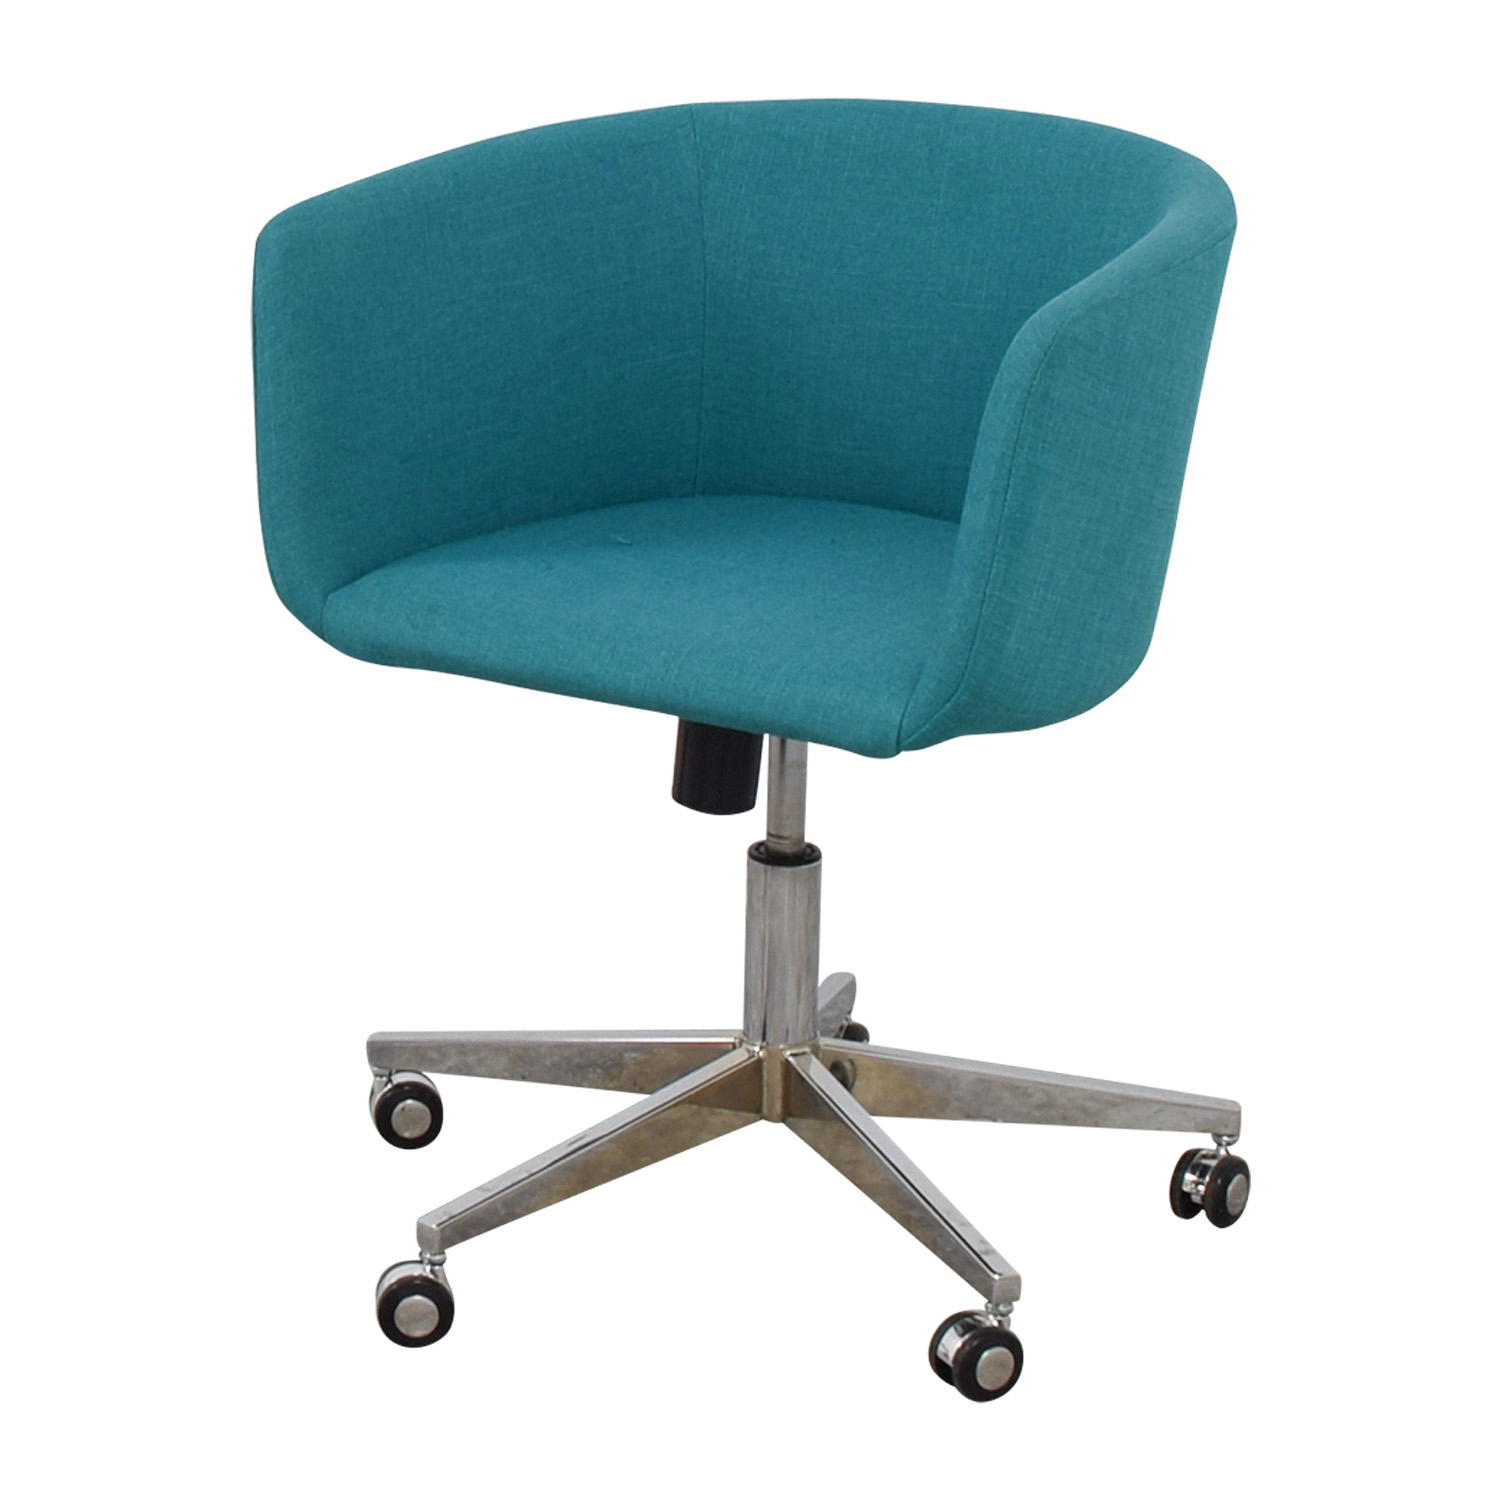 teal computer chair portable gym 37 off cb2 desk with castors chairs